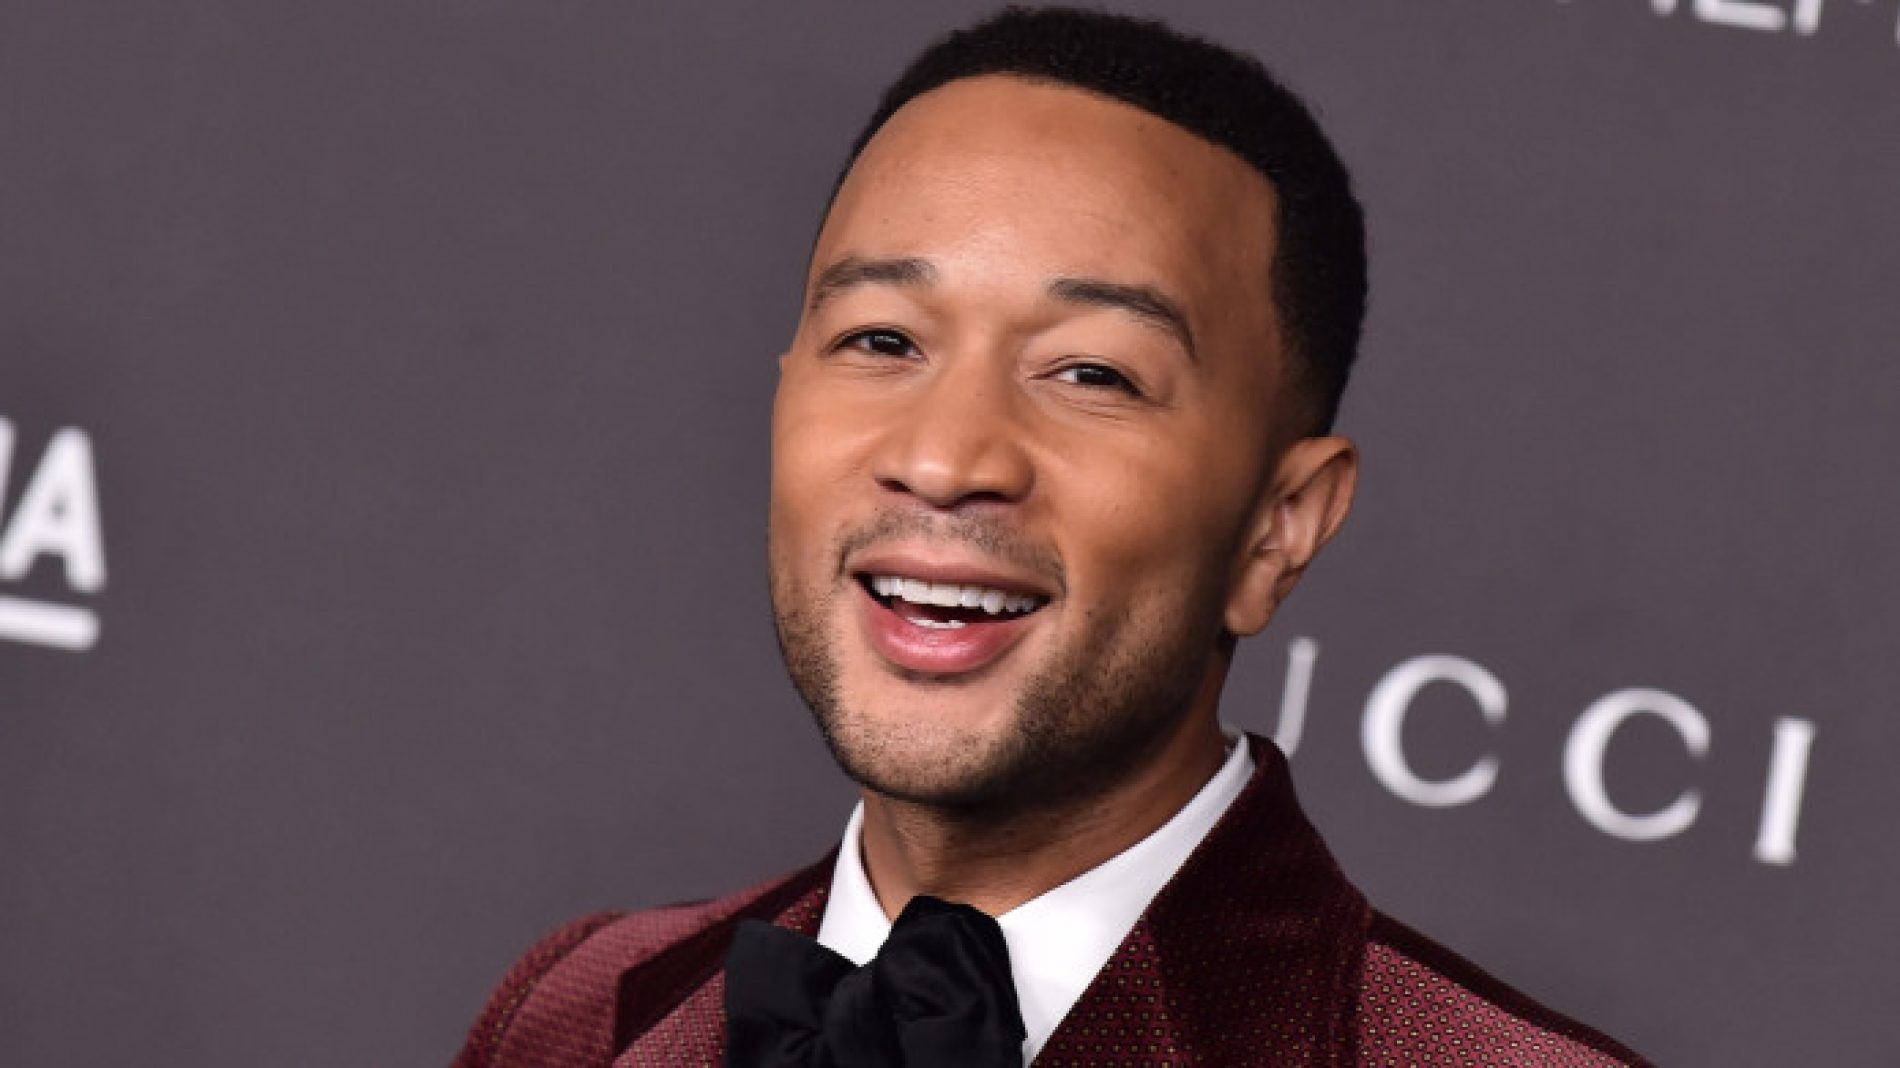 John Legend is PEOPLE's 'Sexiest Man Alive' for 2019… and We're not sure what to think about it